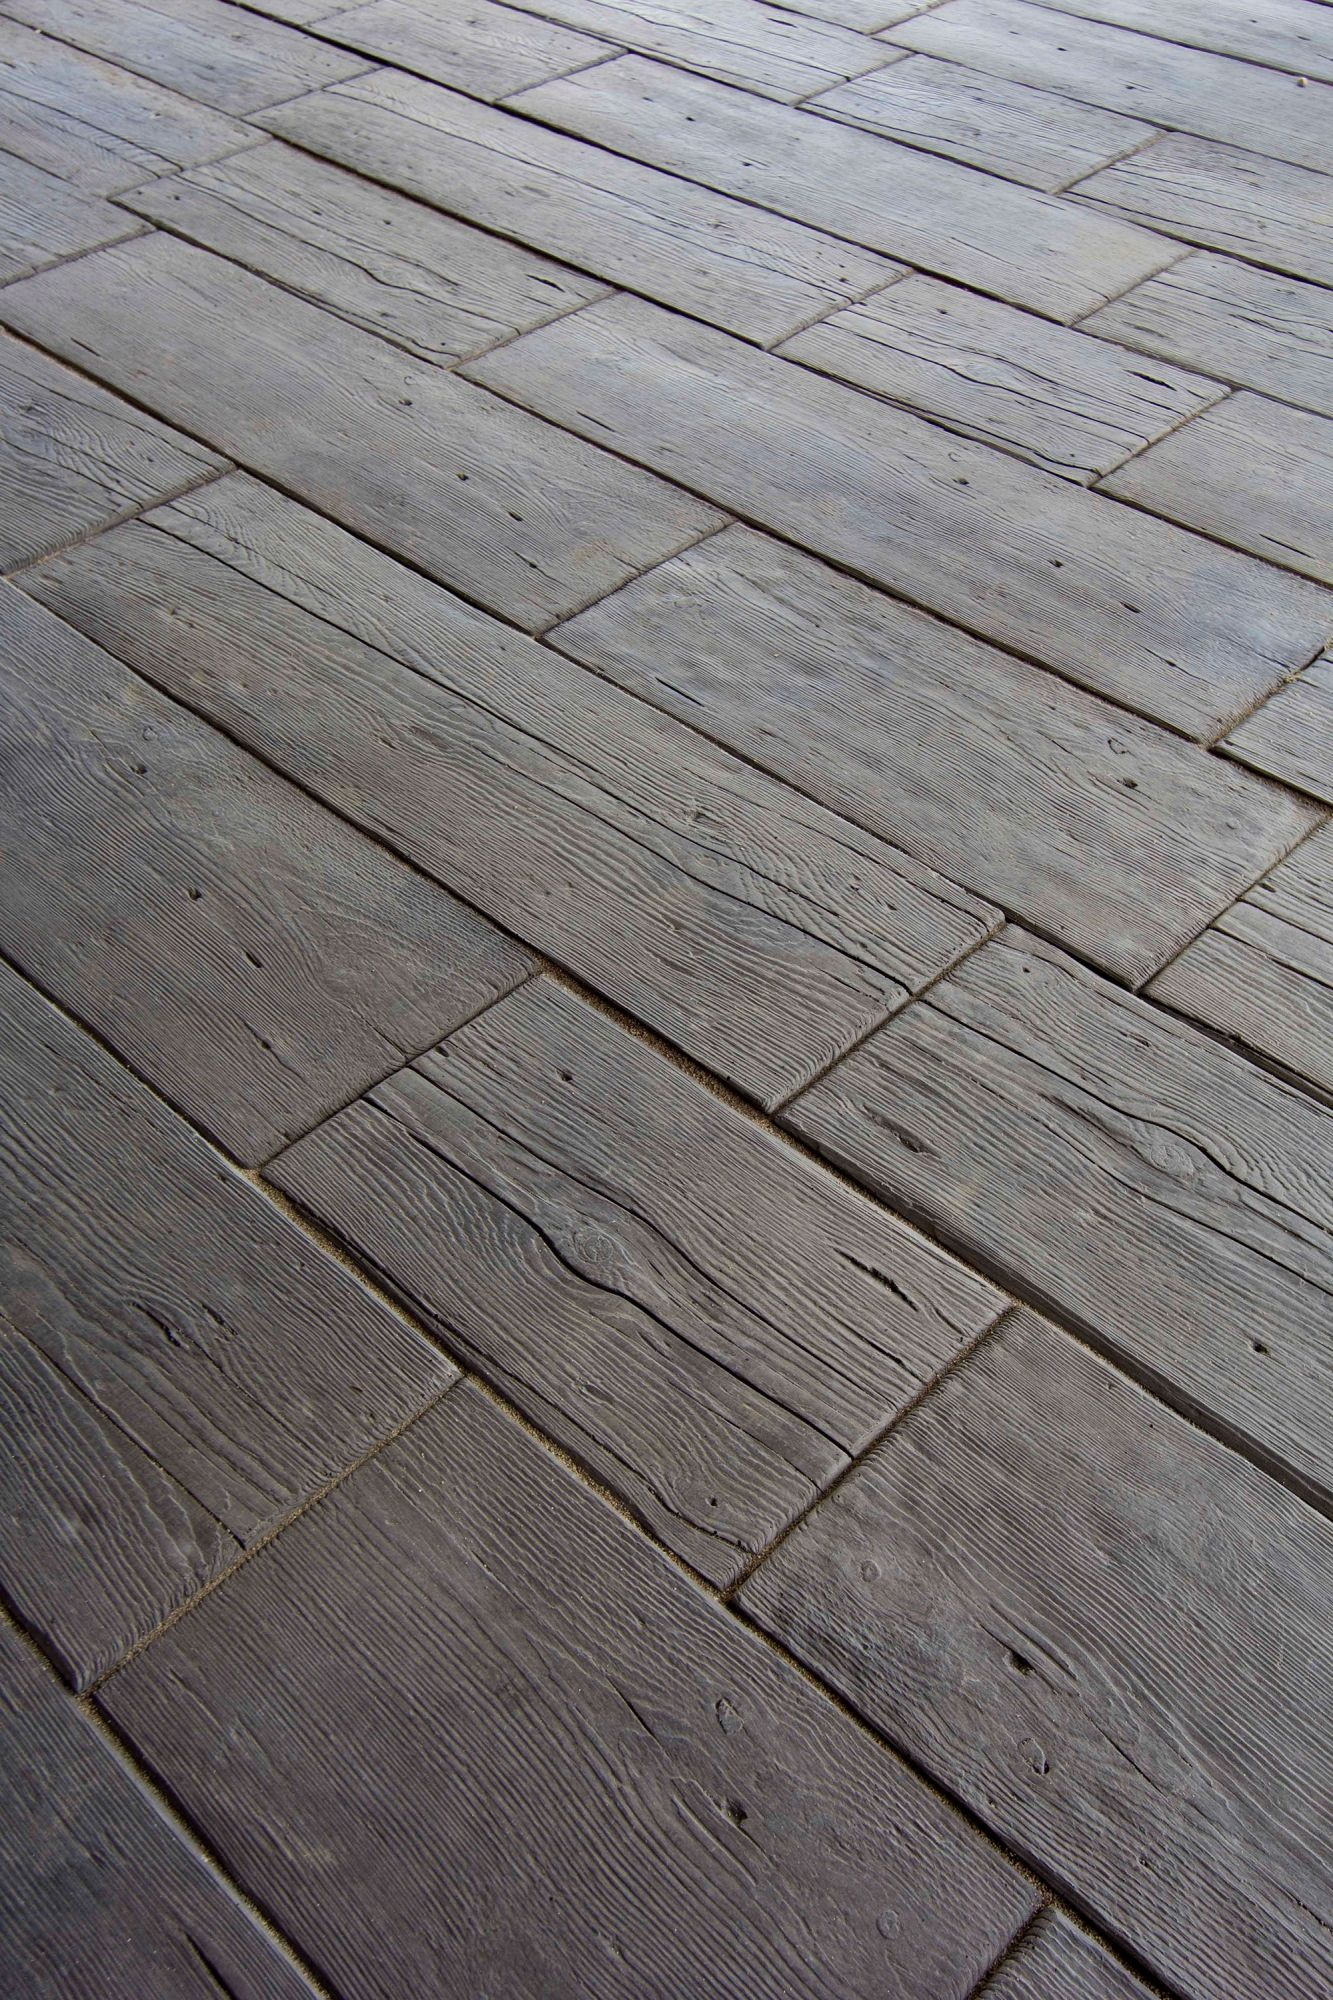 Rustic Wood Nope 2 Thick Concrete Pavers Barn Plank